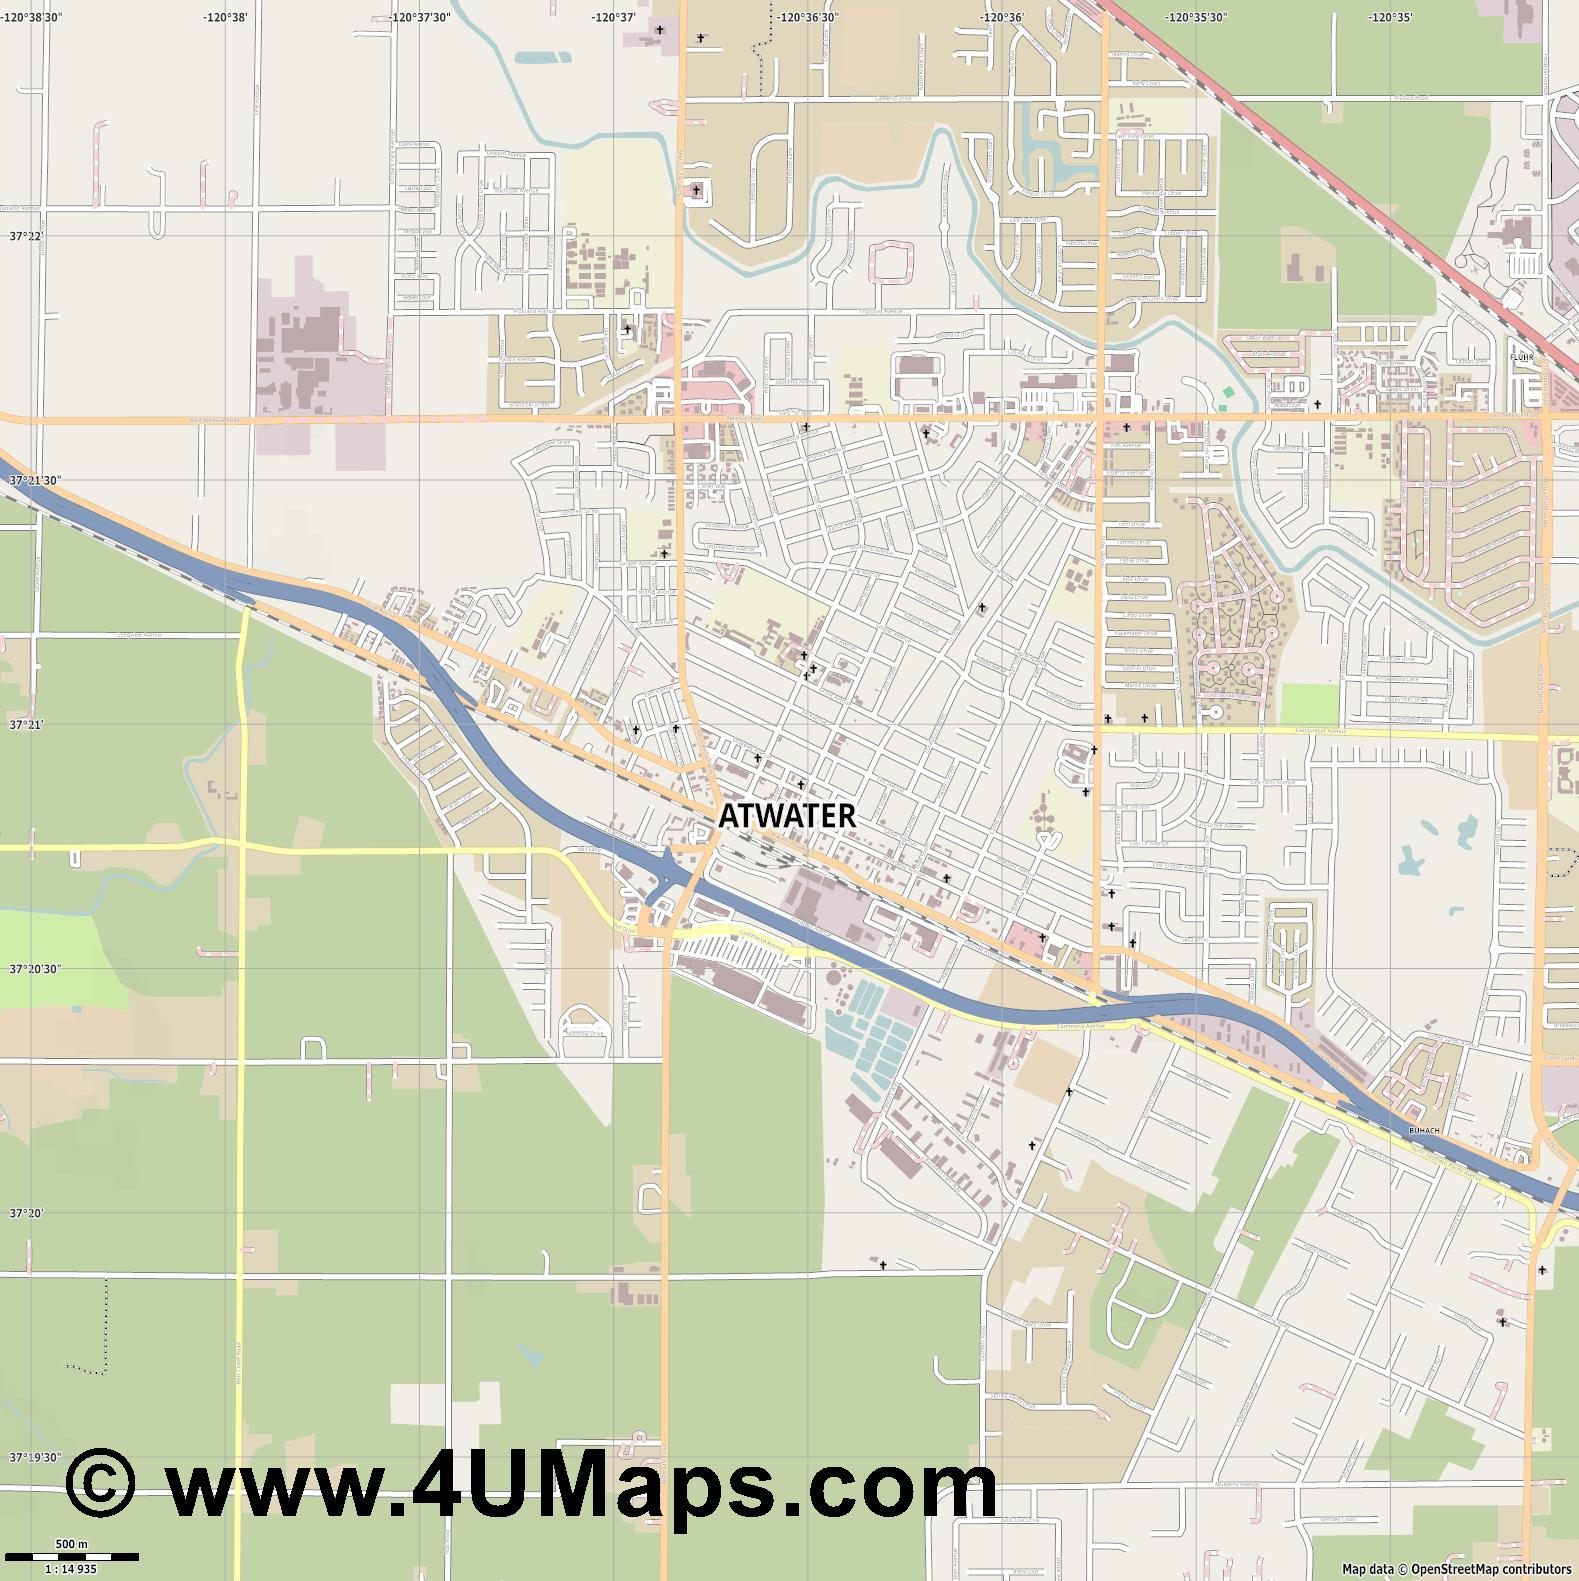 Atwater  jpg ultra high detail preview vector city map